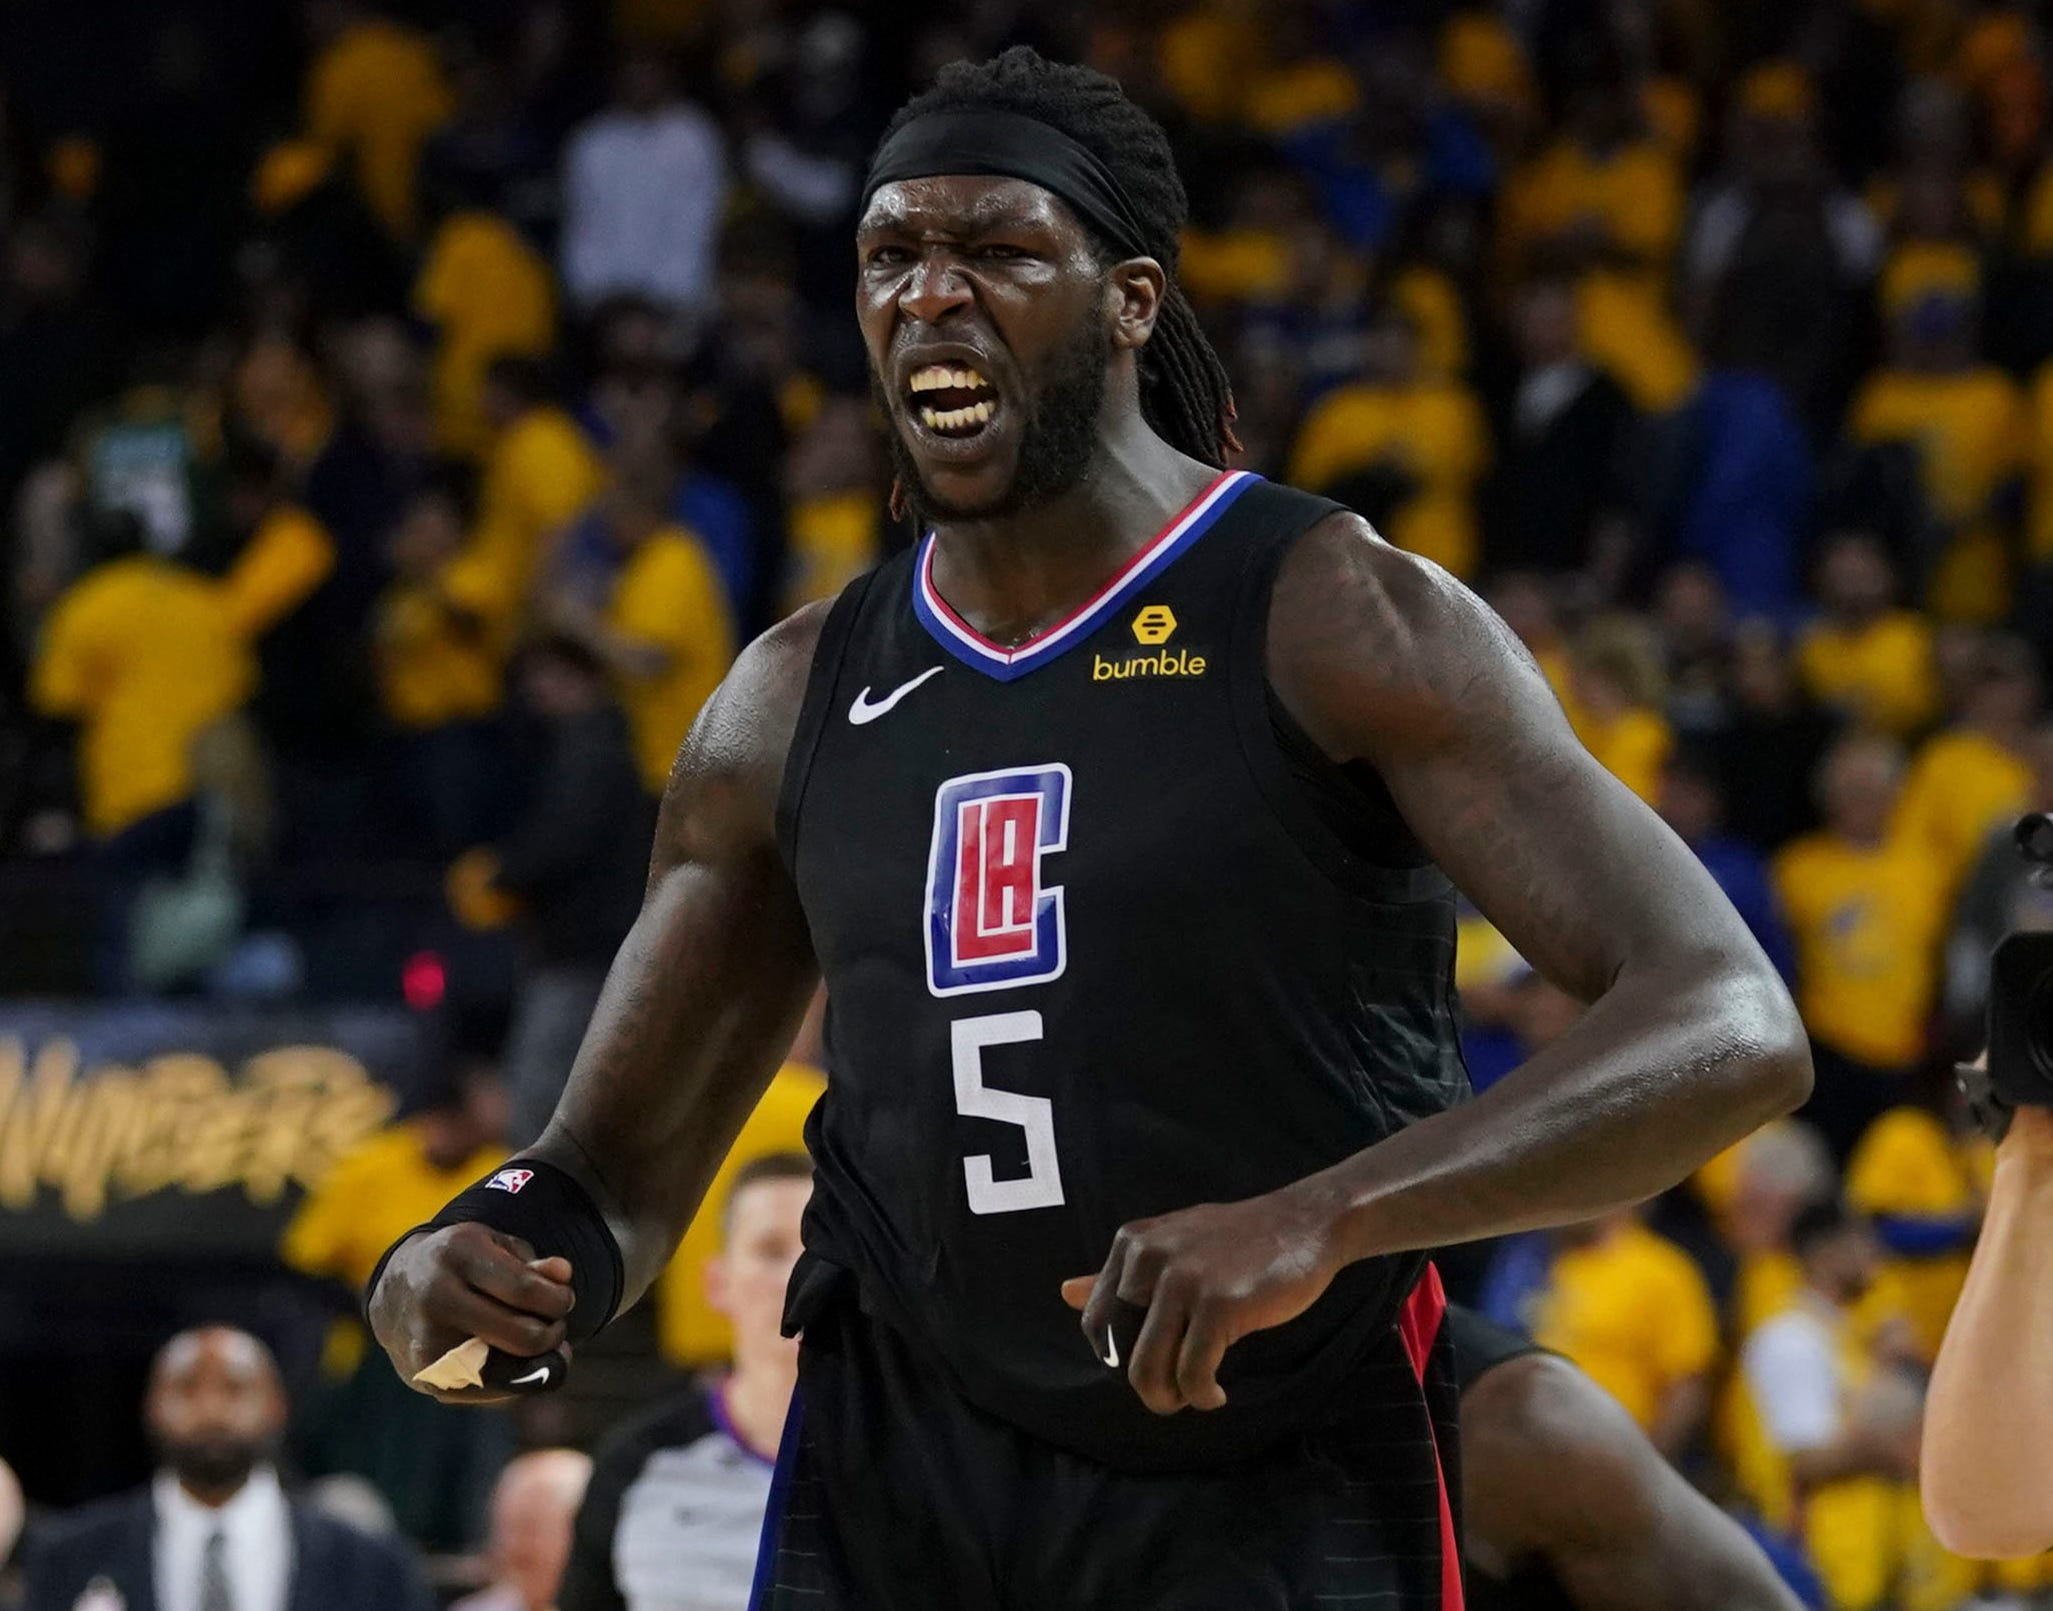 April 15: Montrezl Harrell celebrates after the Clippers stunned the Warriors with the biggest comeback in playoff history to win Game 2 in Oakland.